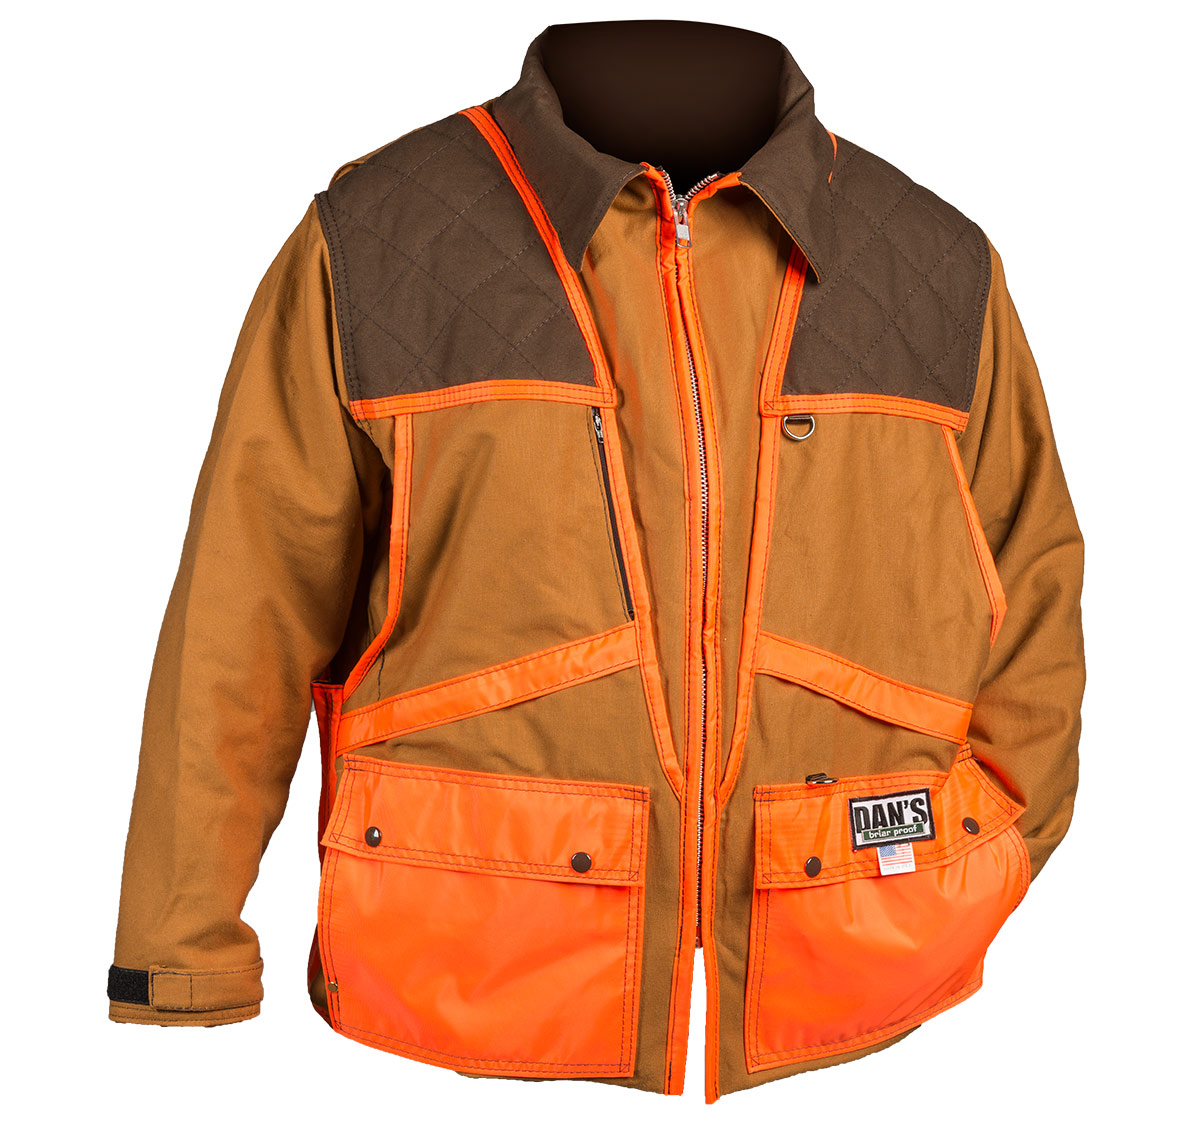 Dans Briarproof Upland Game Coat